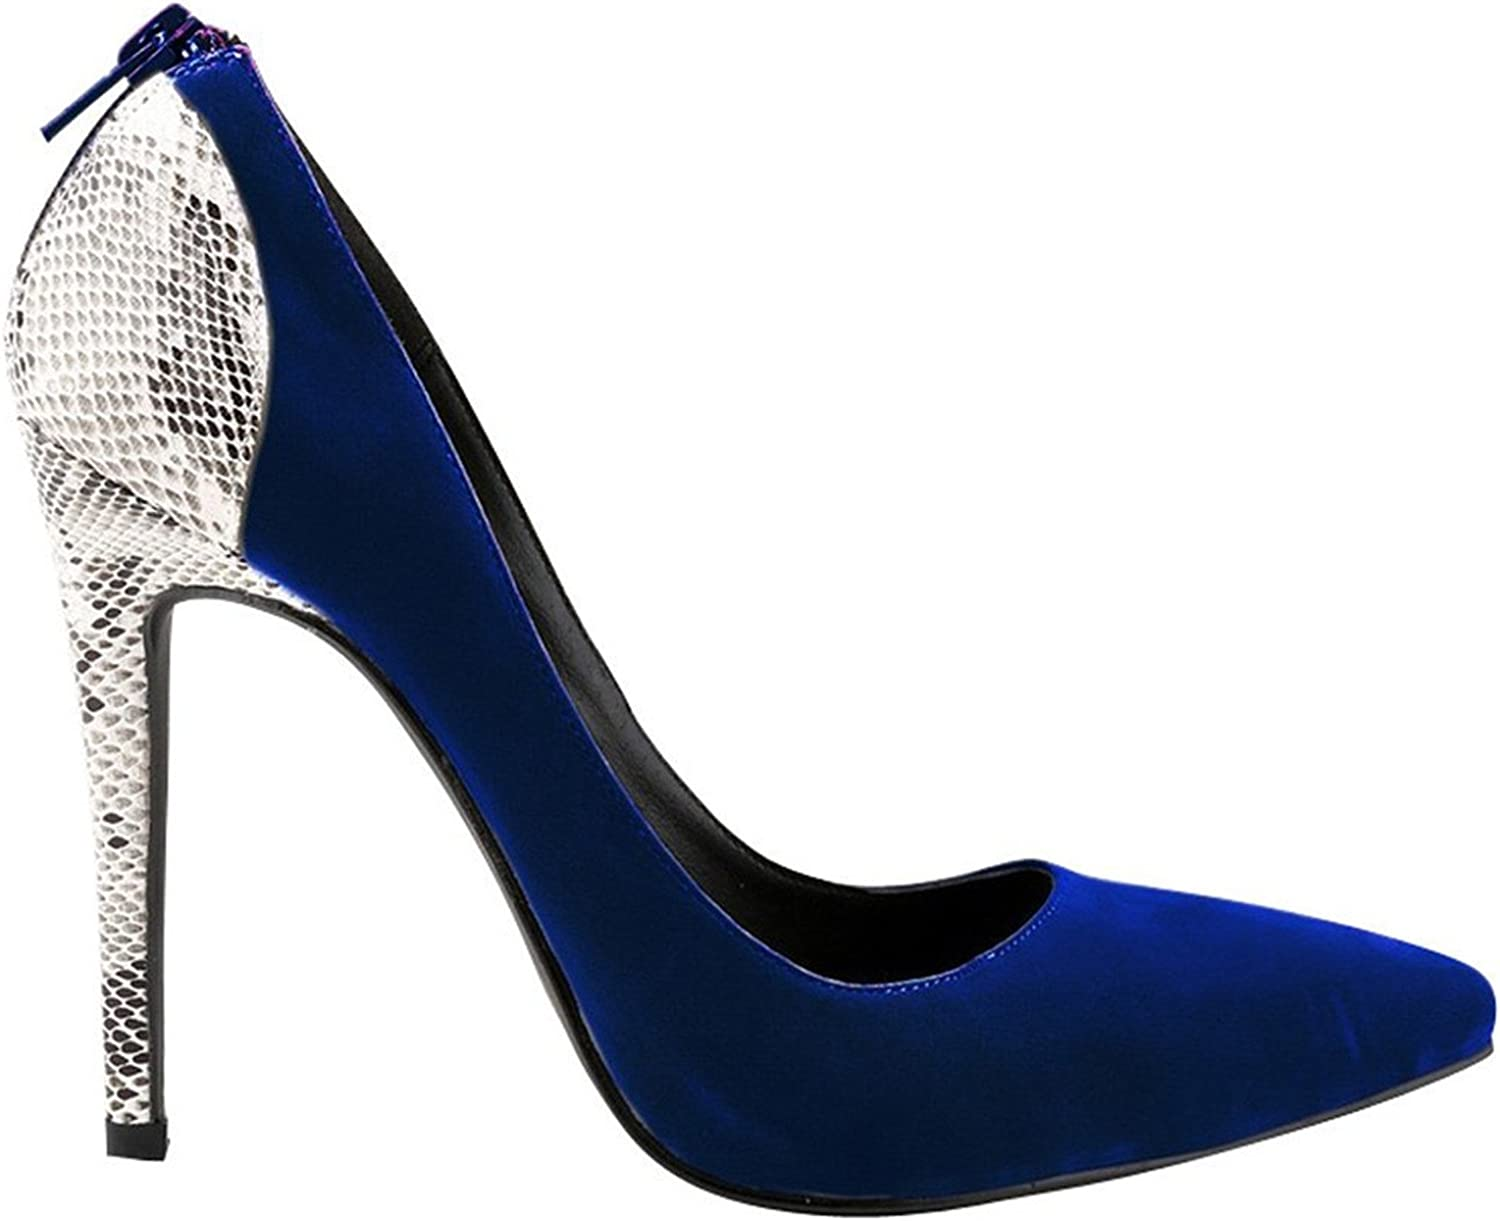 WANabcMAN Comfortable Women's Suede Pointy Stiletto High Heels Party Pumps Weeding shoes Royal bluee 42